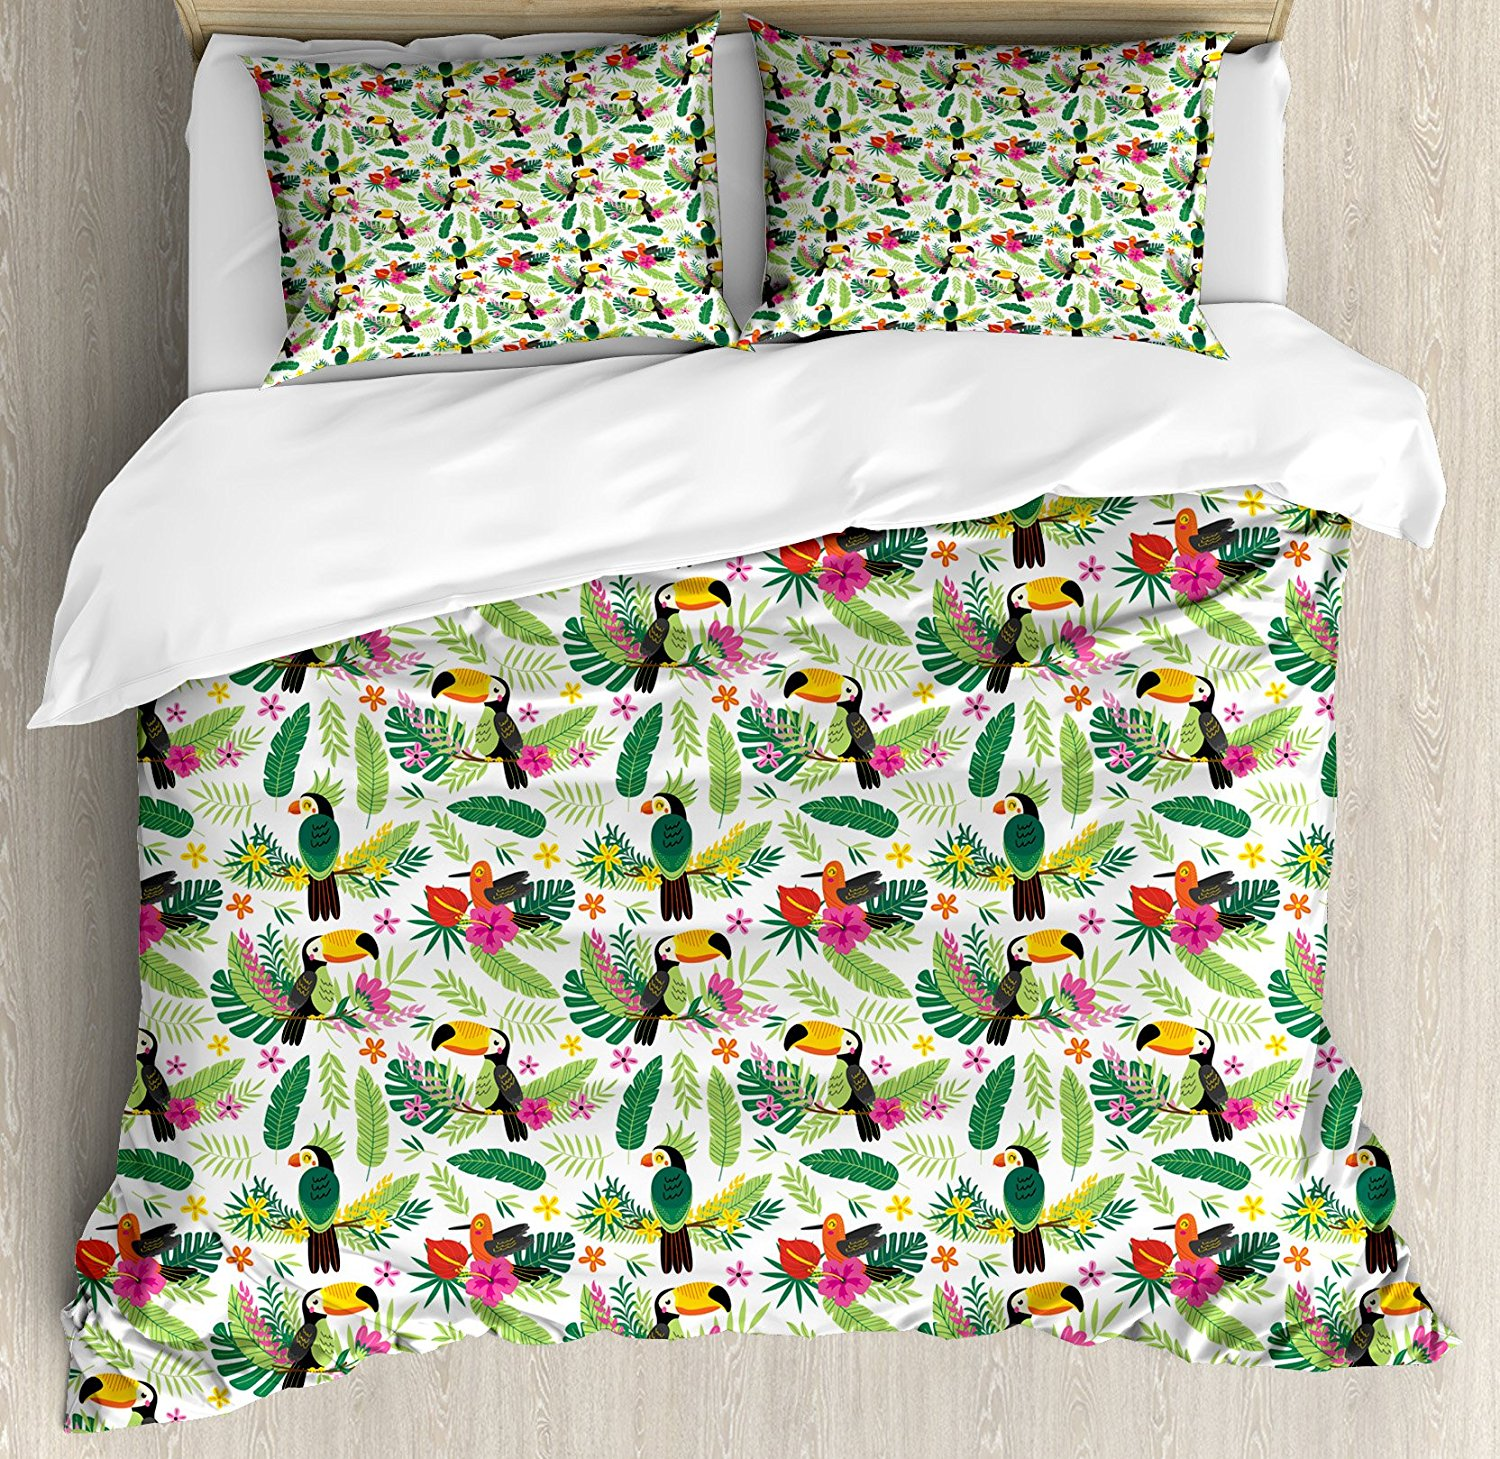 Duvet Cover Set, Tropical Island Jungle with Flora and Fauna Birds Toucan with Green Leaves Flowers, 4 Piece Bedding Set